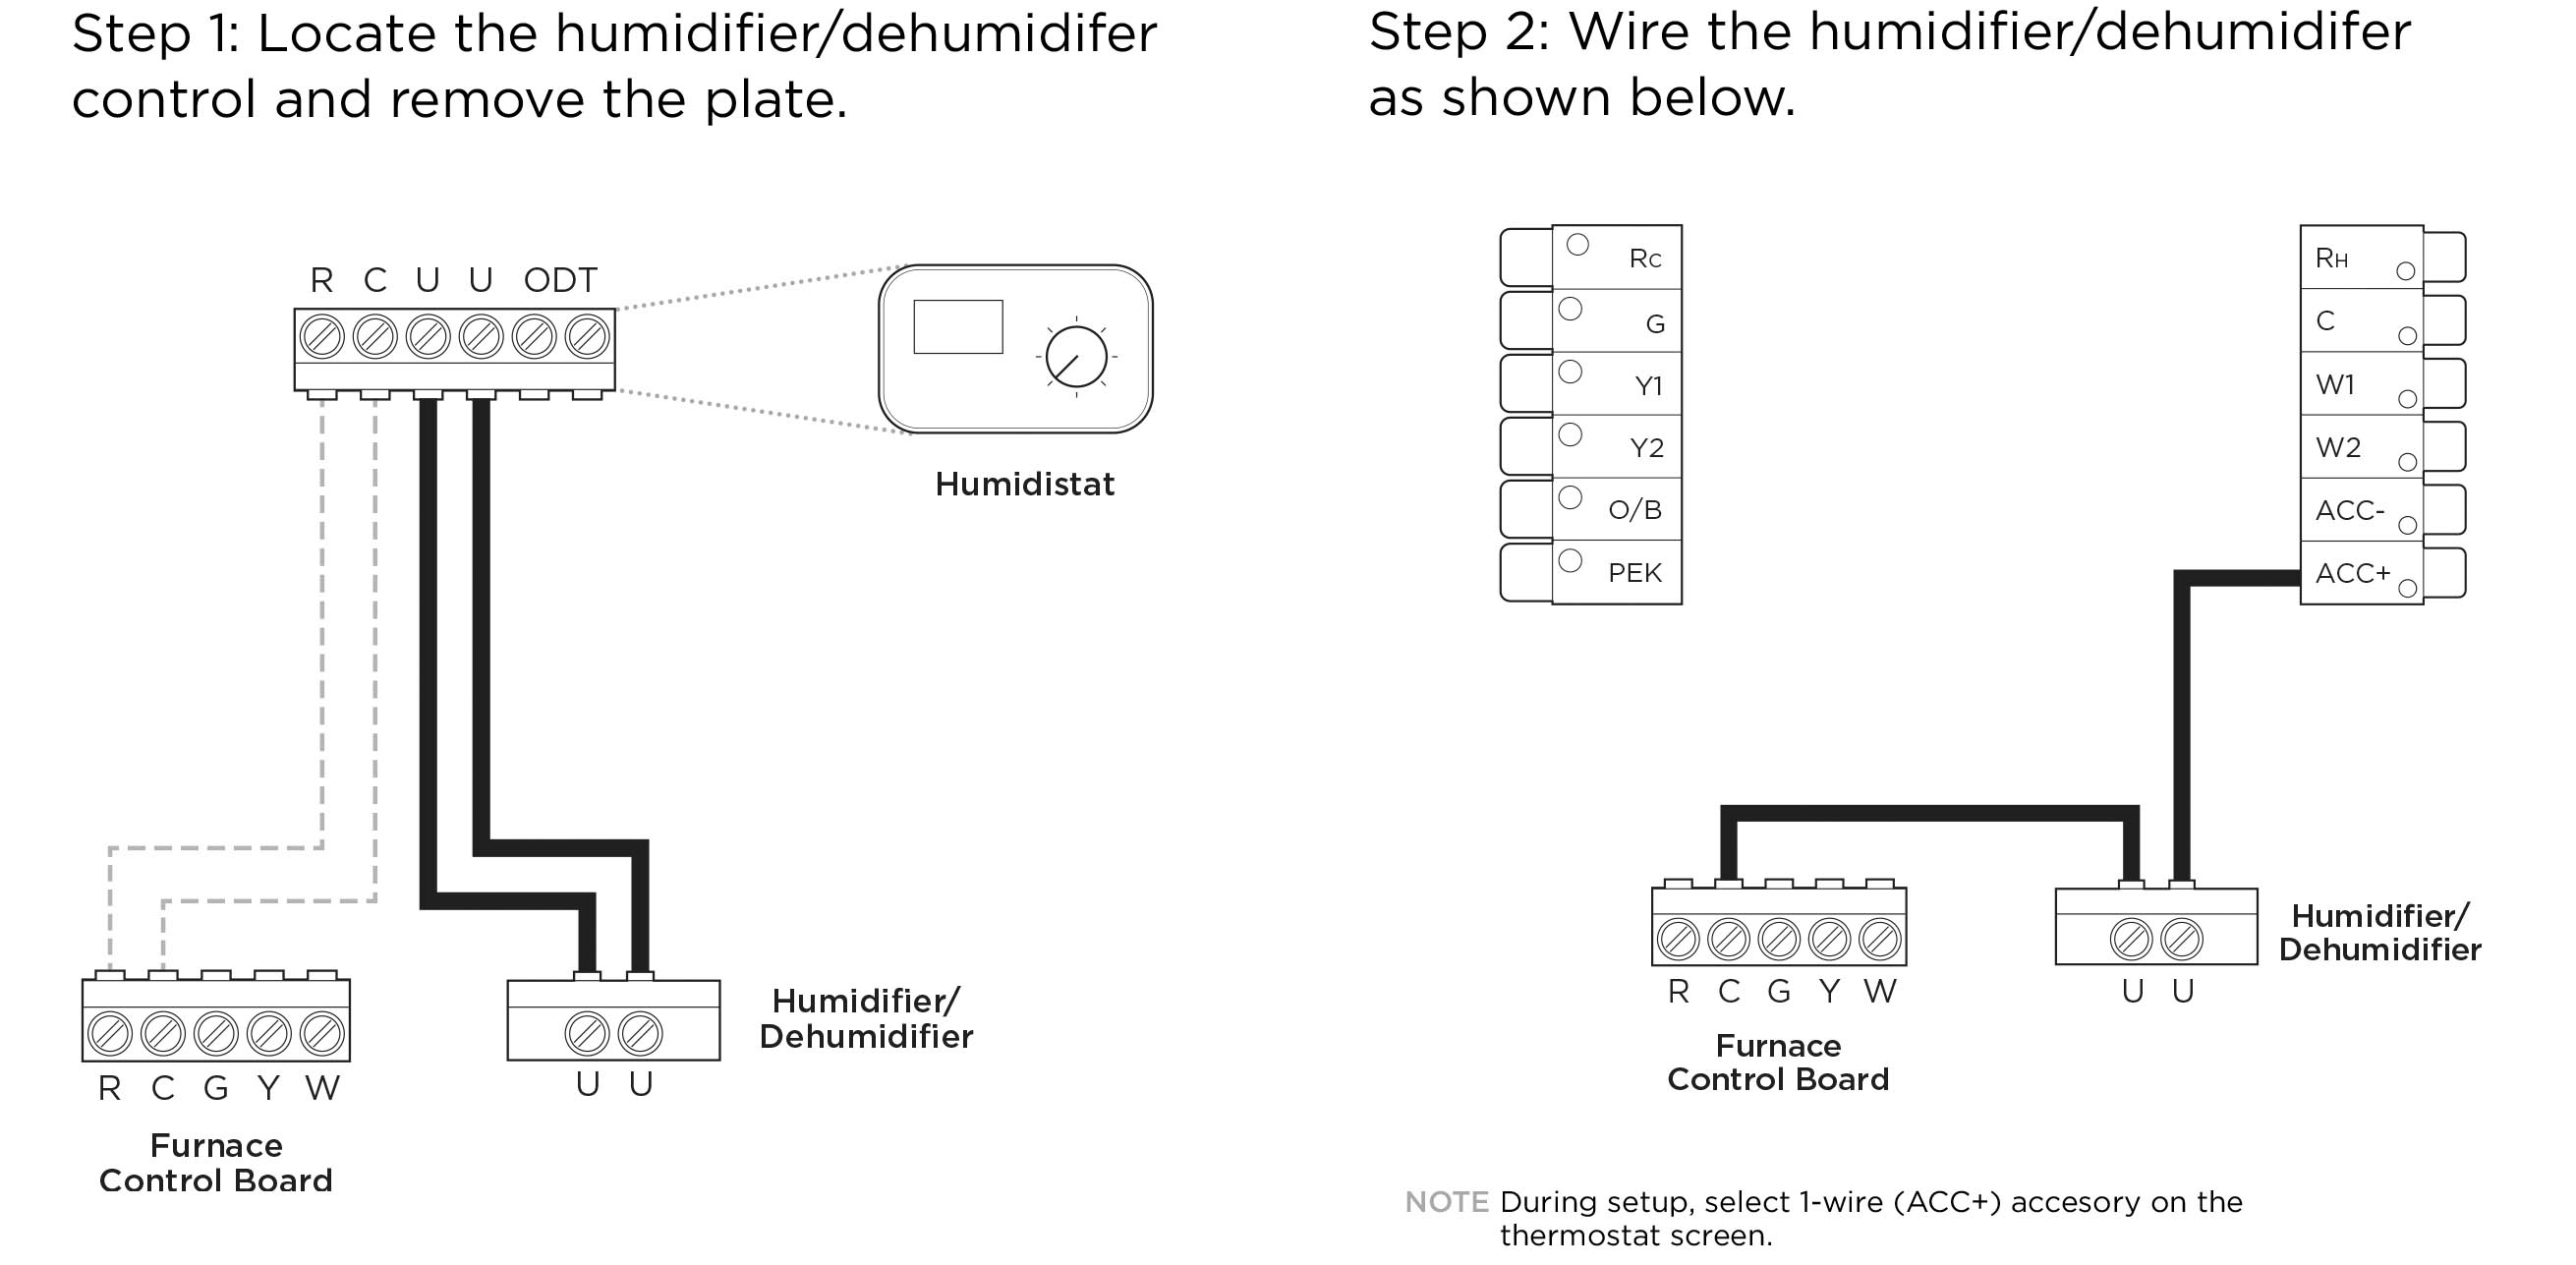 Ducane Furnace Wiring Diagram For Humidifier | Repair Manual on